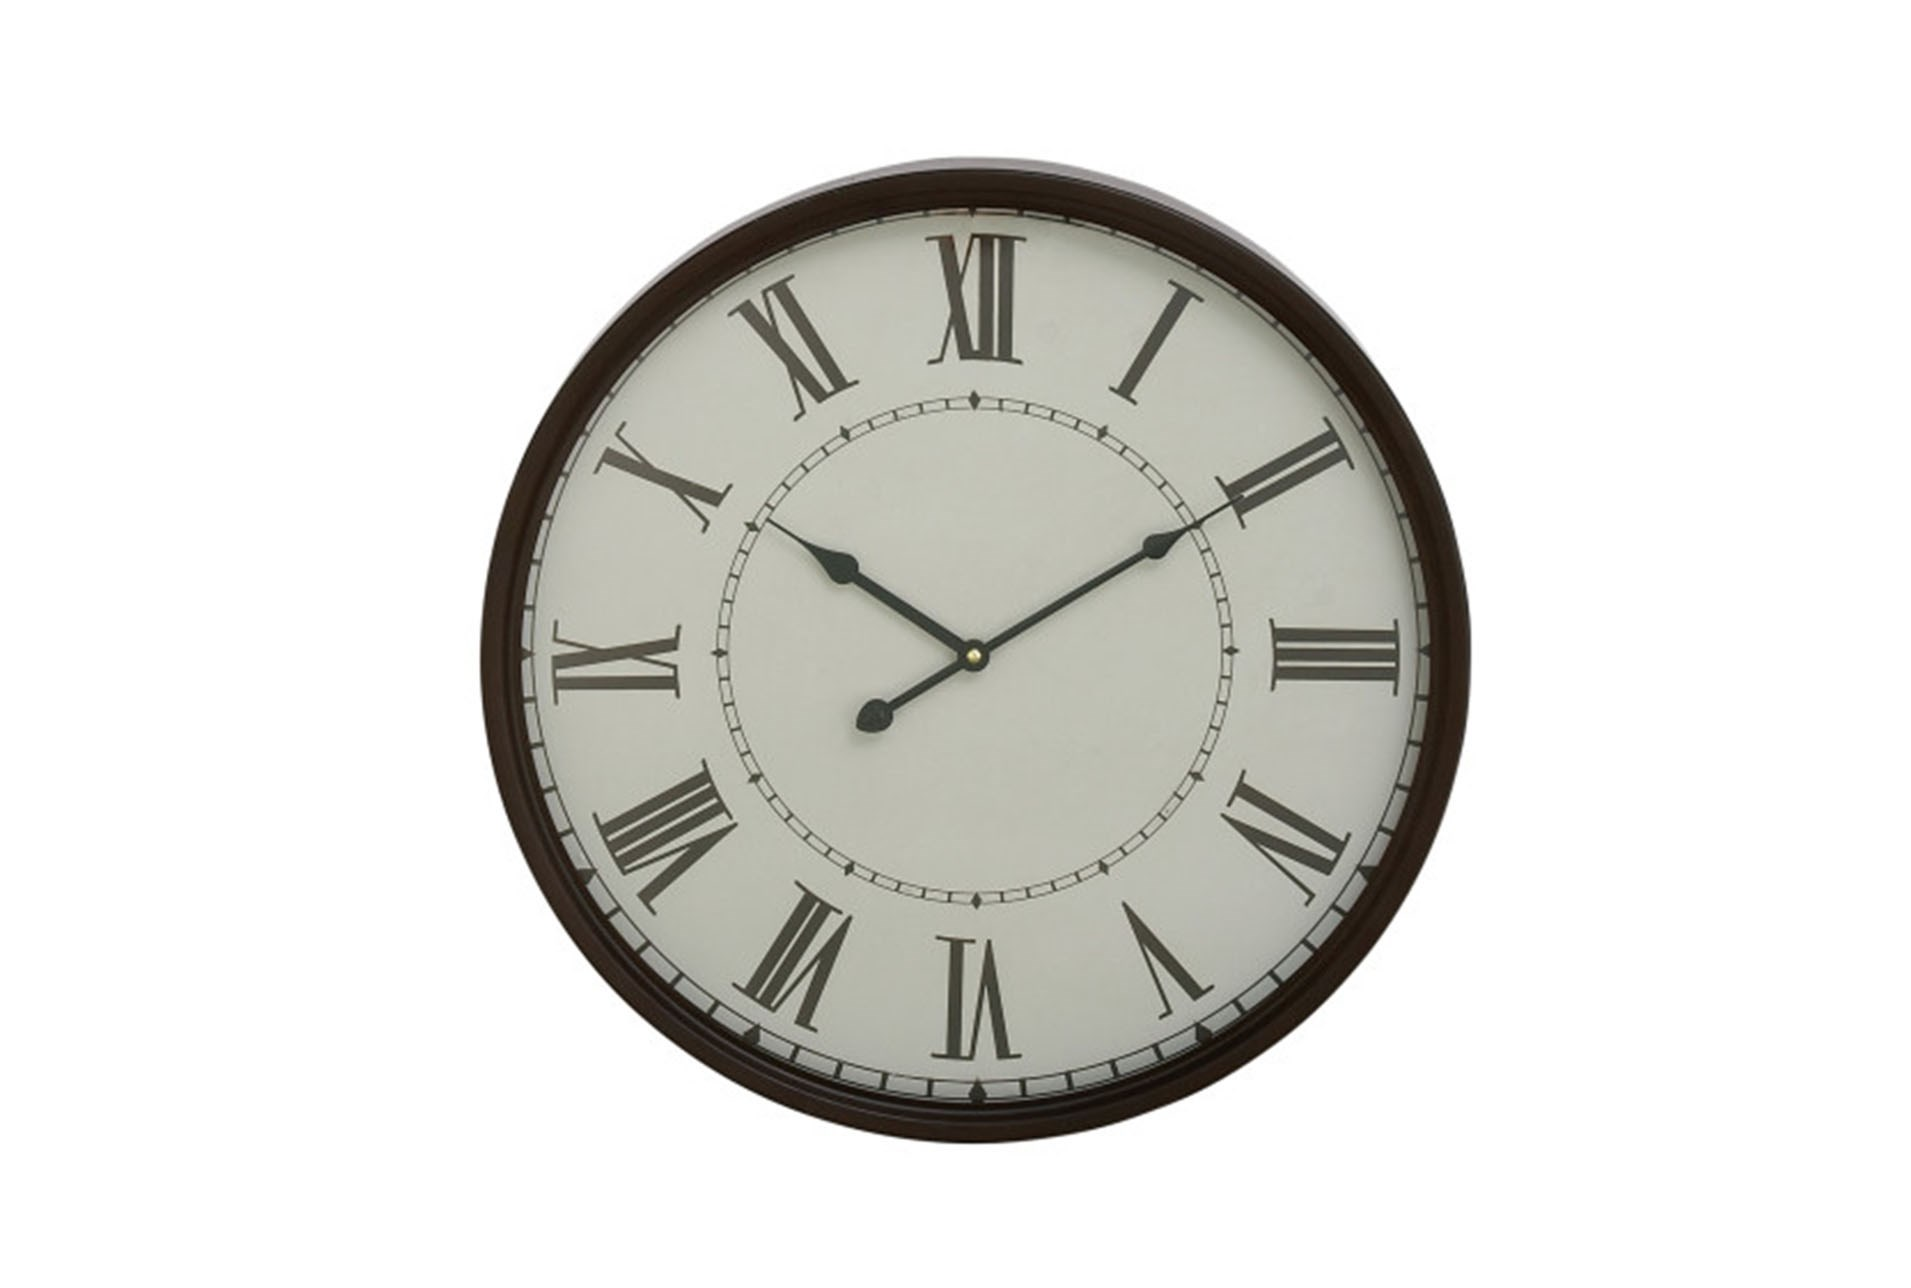 20 Inch Roman Numeral Wall Clock Qty 1 Has Been Successfully Added To Your Cart